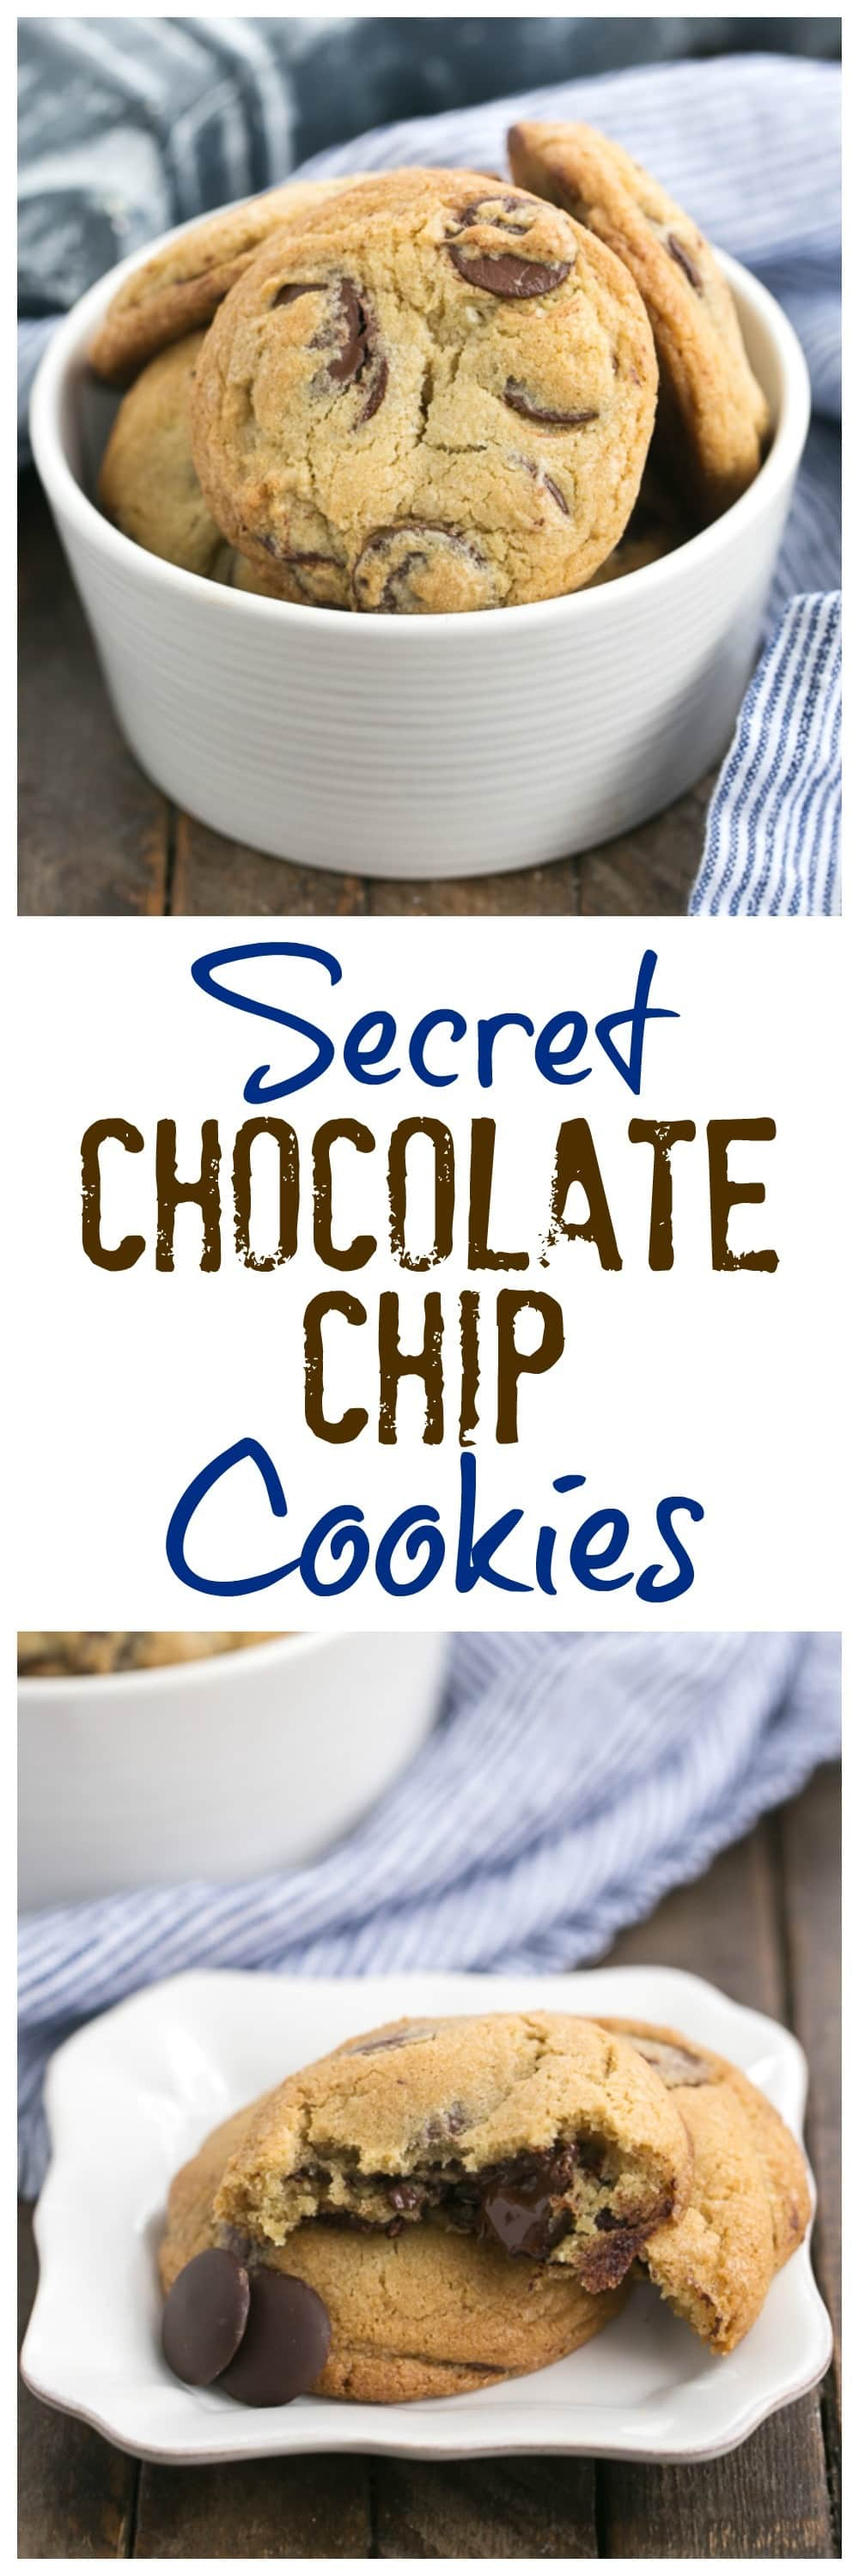 Jacques Torres Secret Chocolate Chip Cookies Truly the BEST chocolate chip cookie recipe!